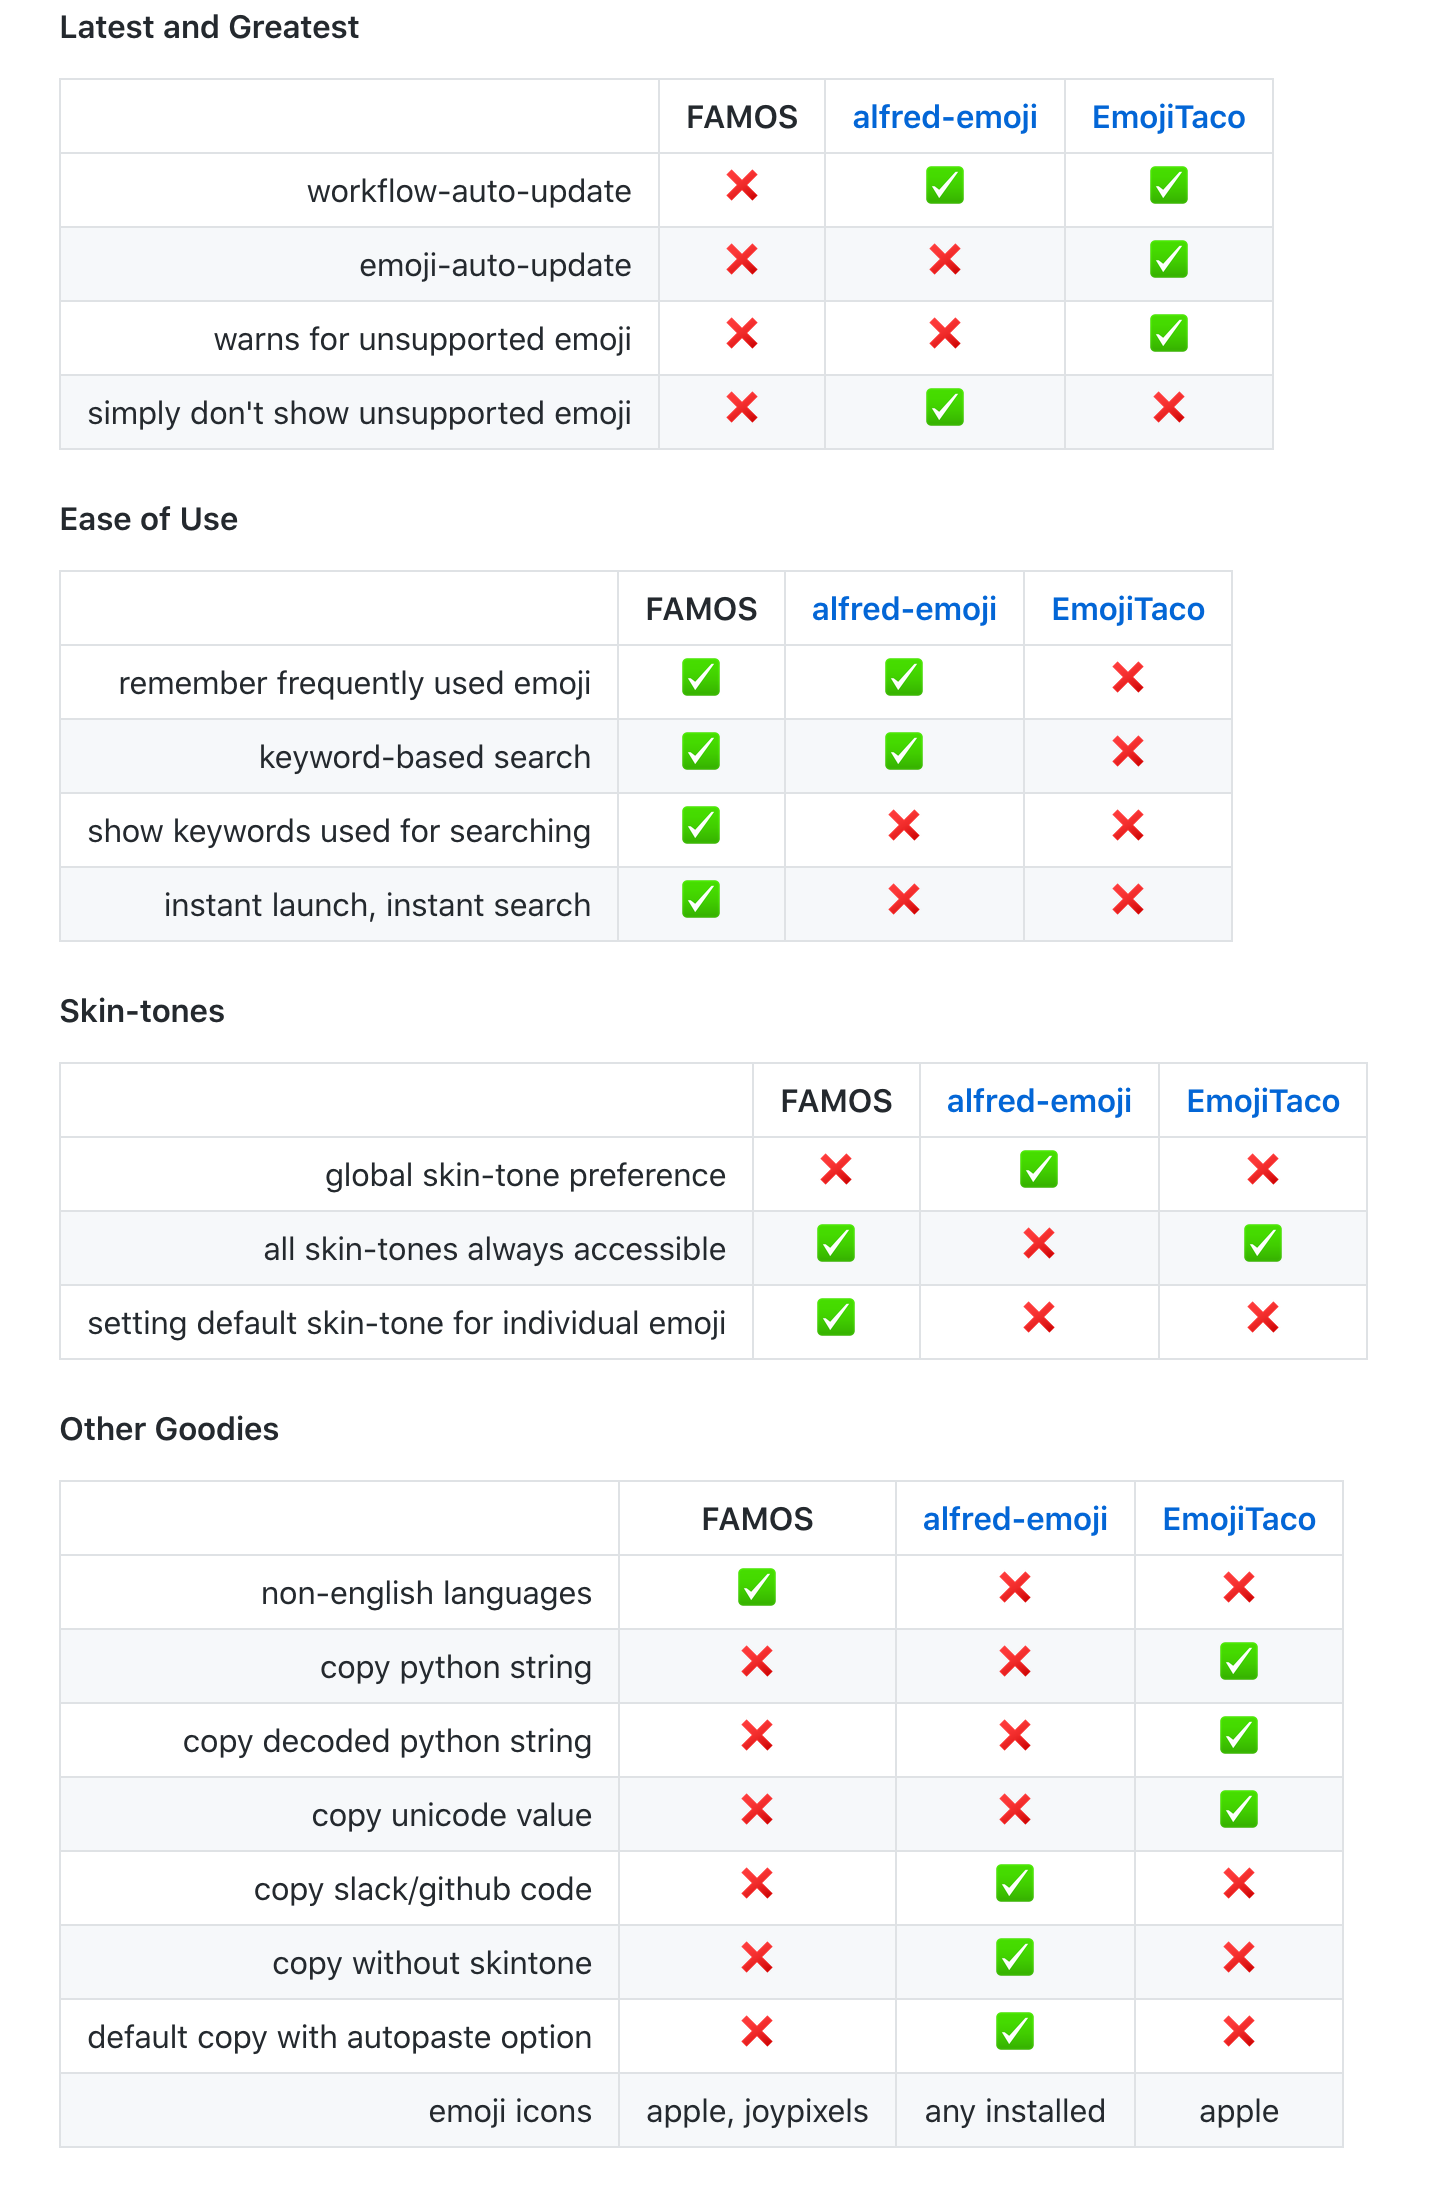 comparison-chart-image-for-forums.png